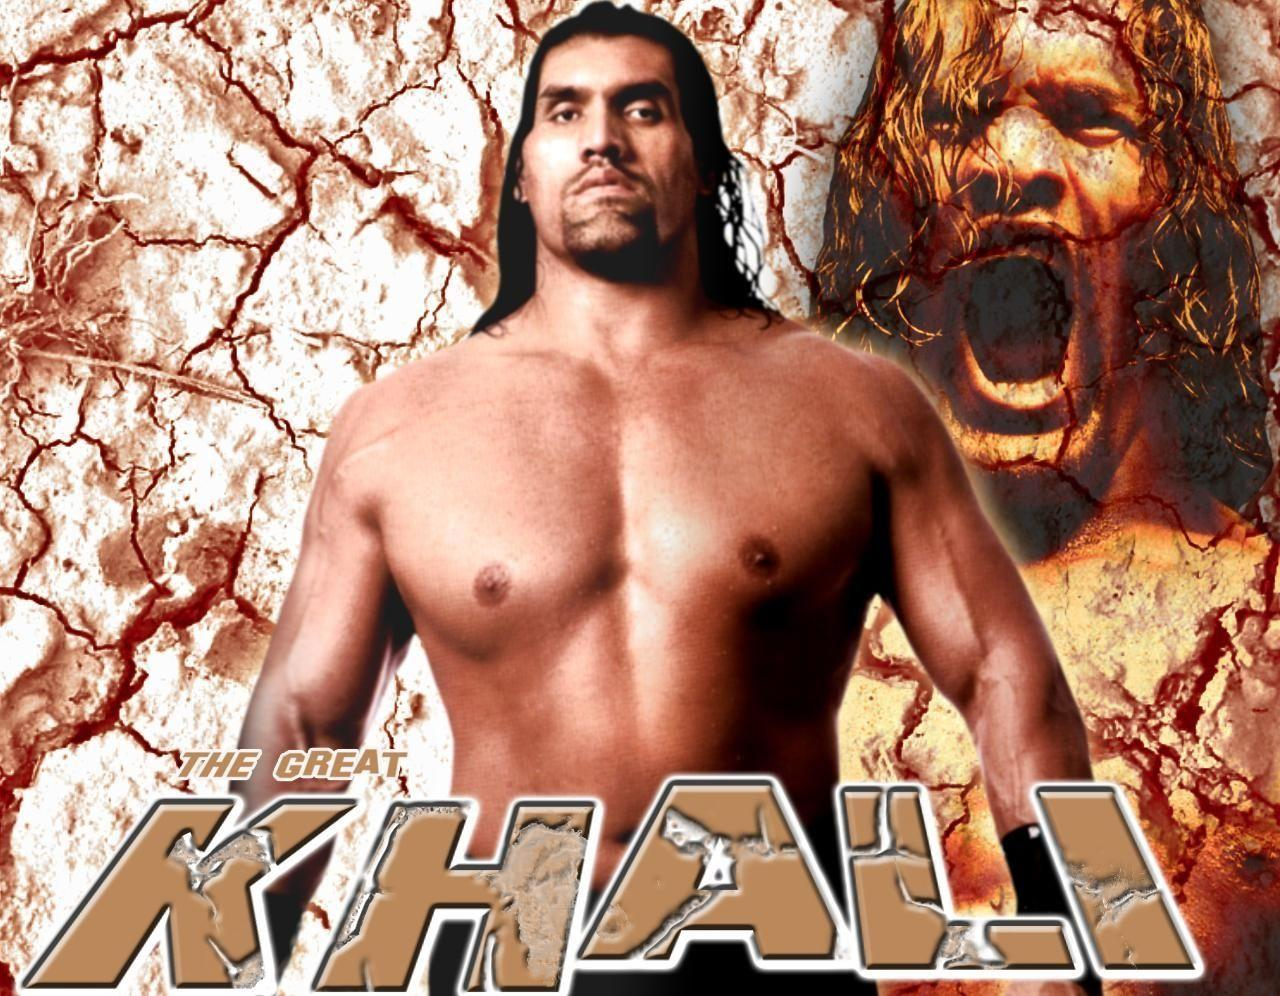 Wwe Wallpapers Hd Best Collection Of Wwe Wrestlers X